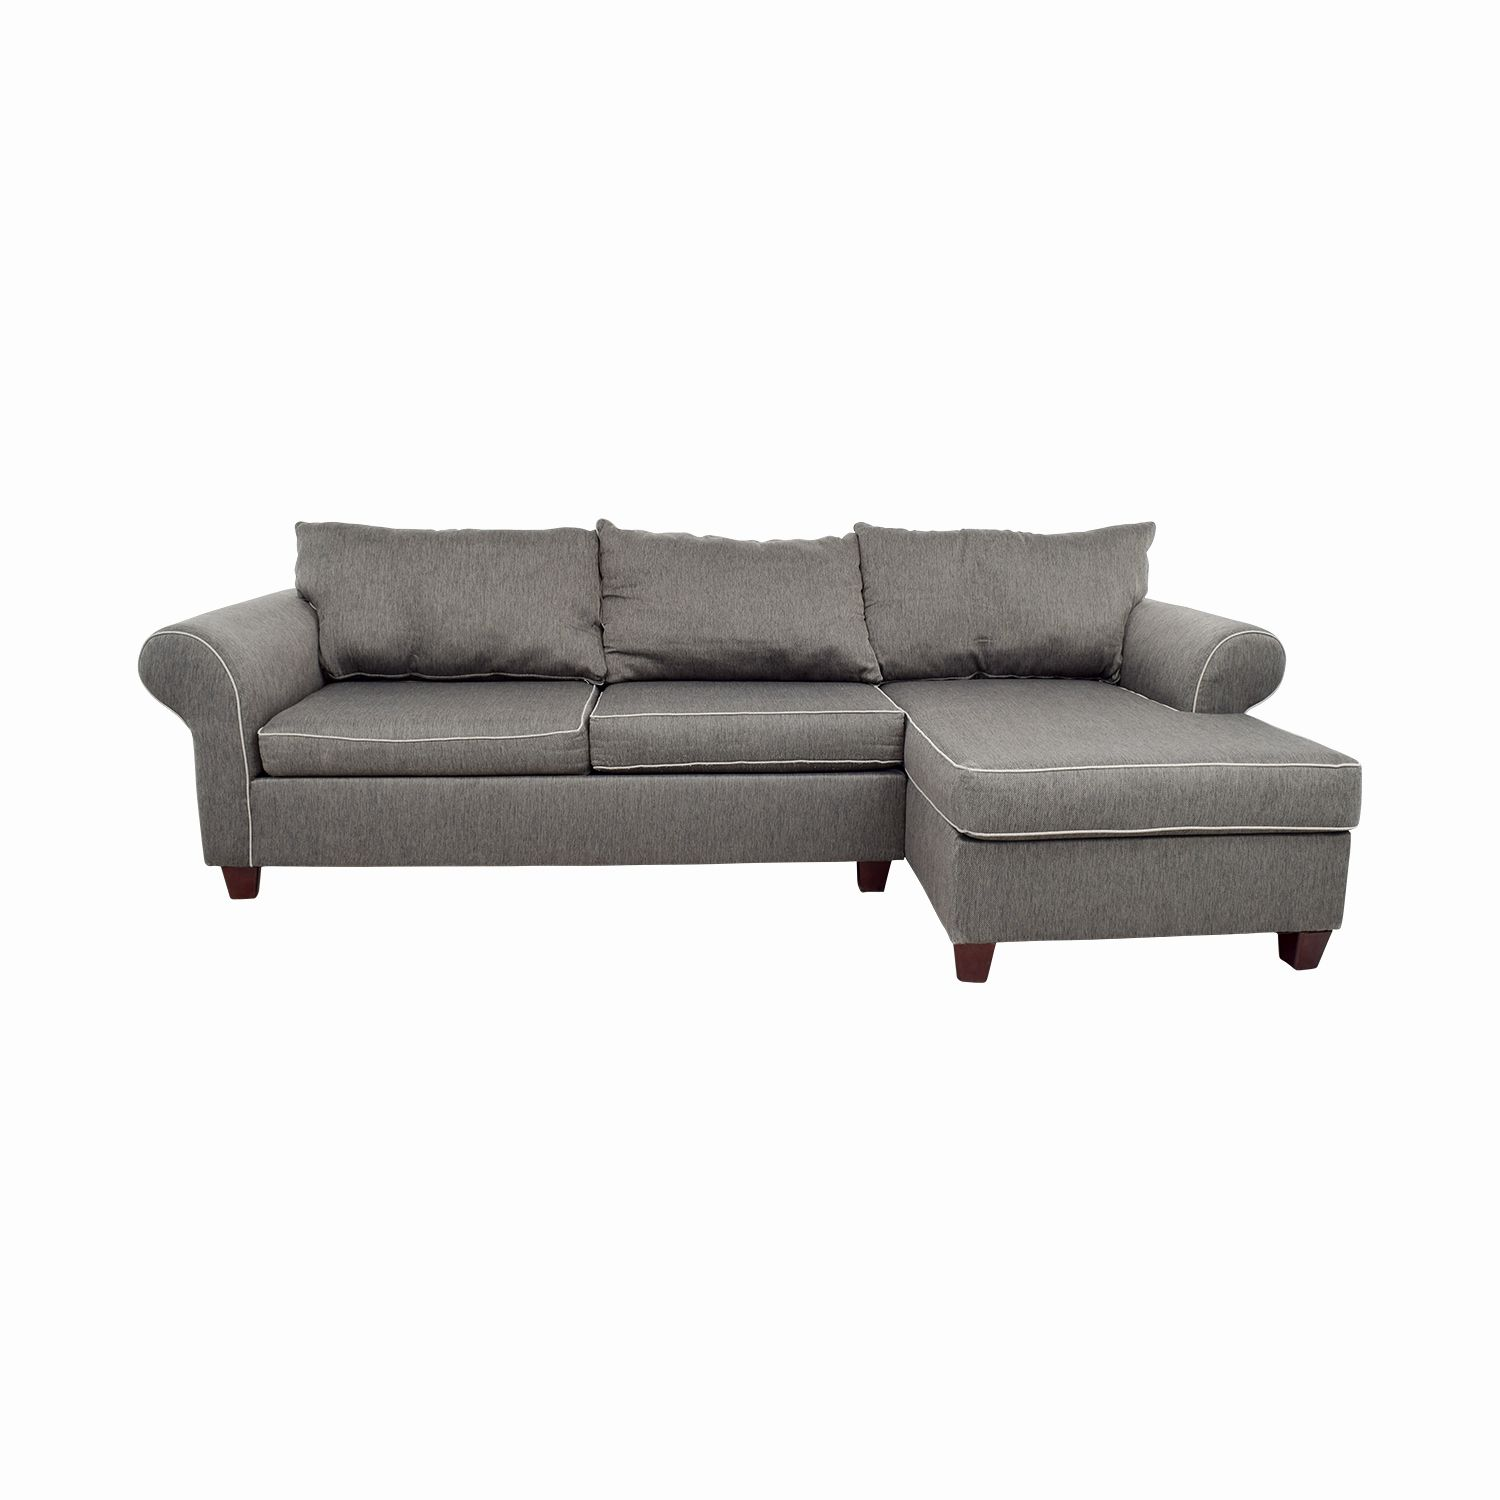 L sofa Set grapy L sofa Set Elegant 65 Creative Nifty